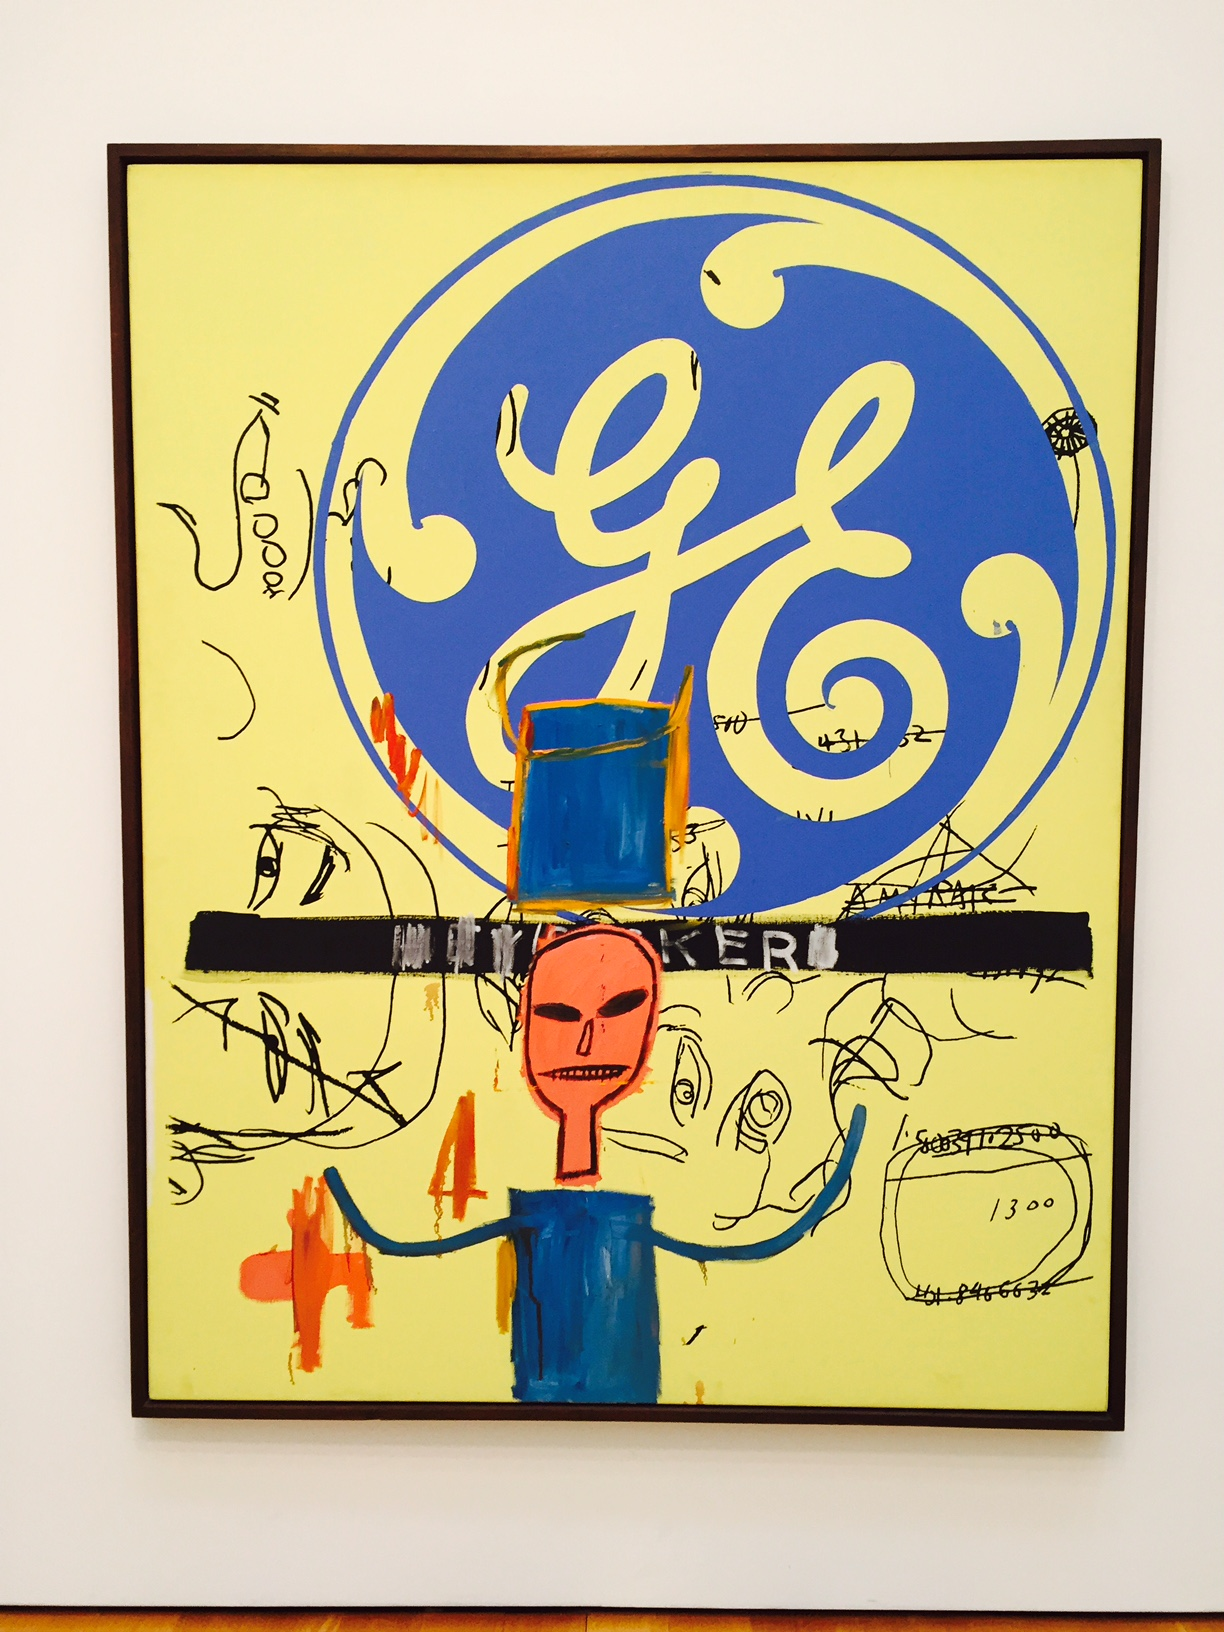 Jean-Michel Basquiat & Andy Warhol Collaboration